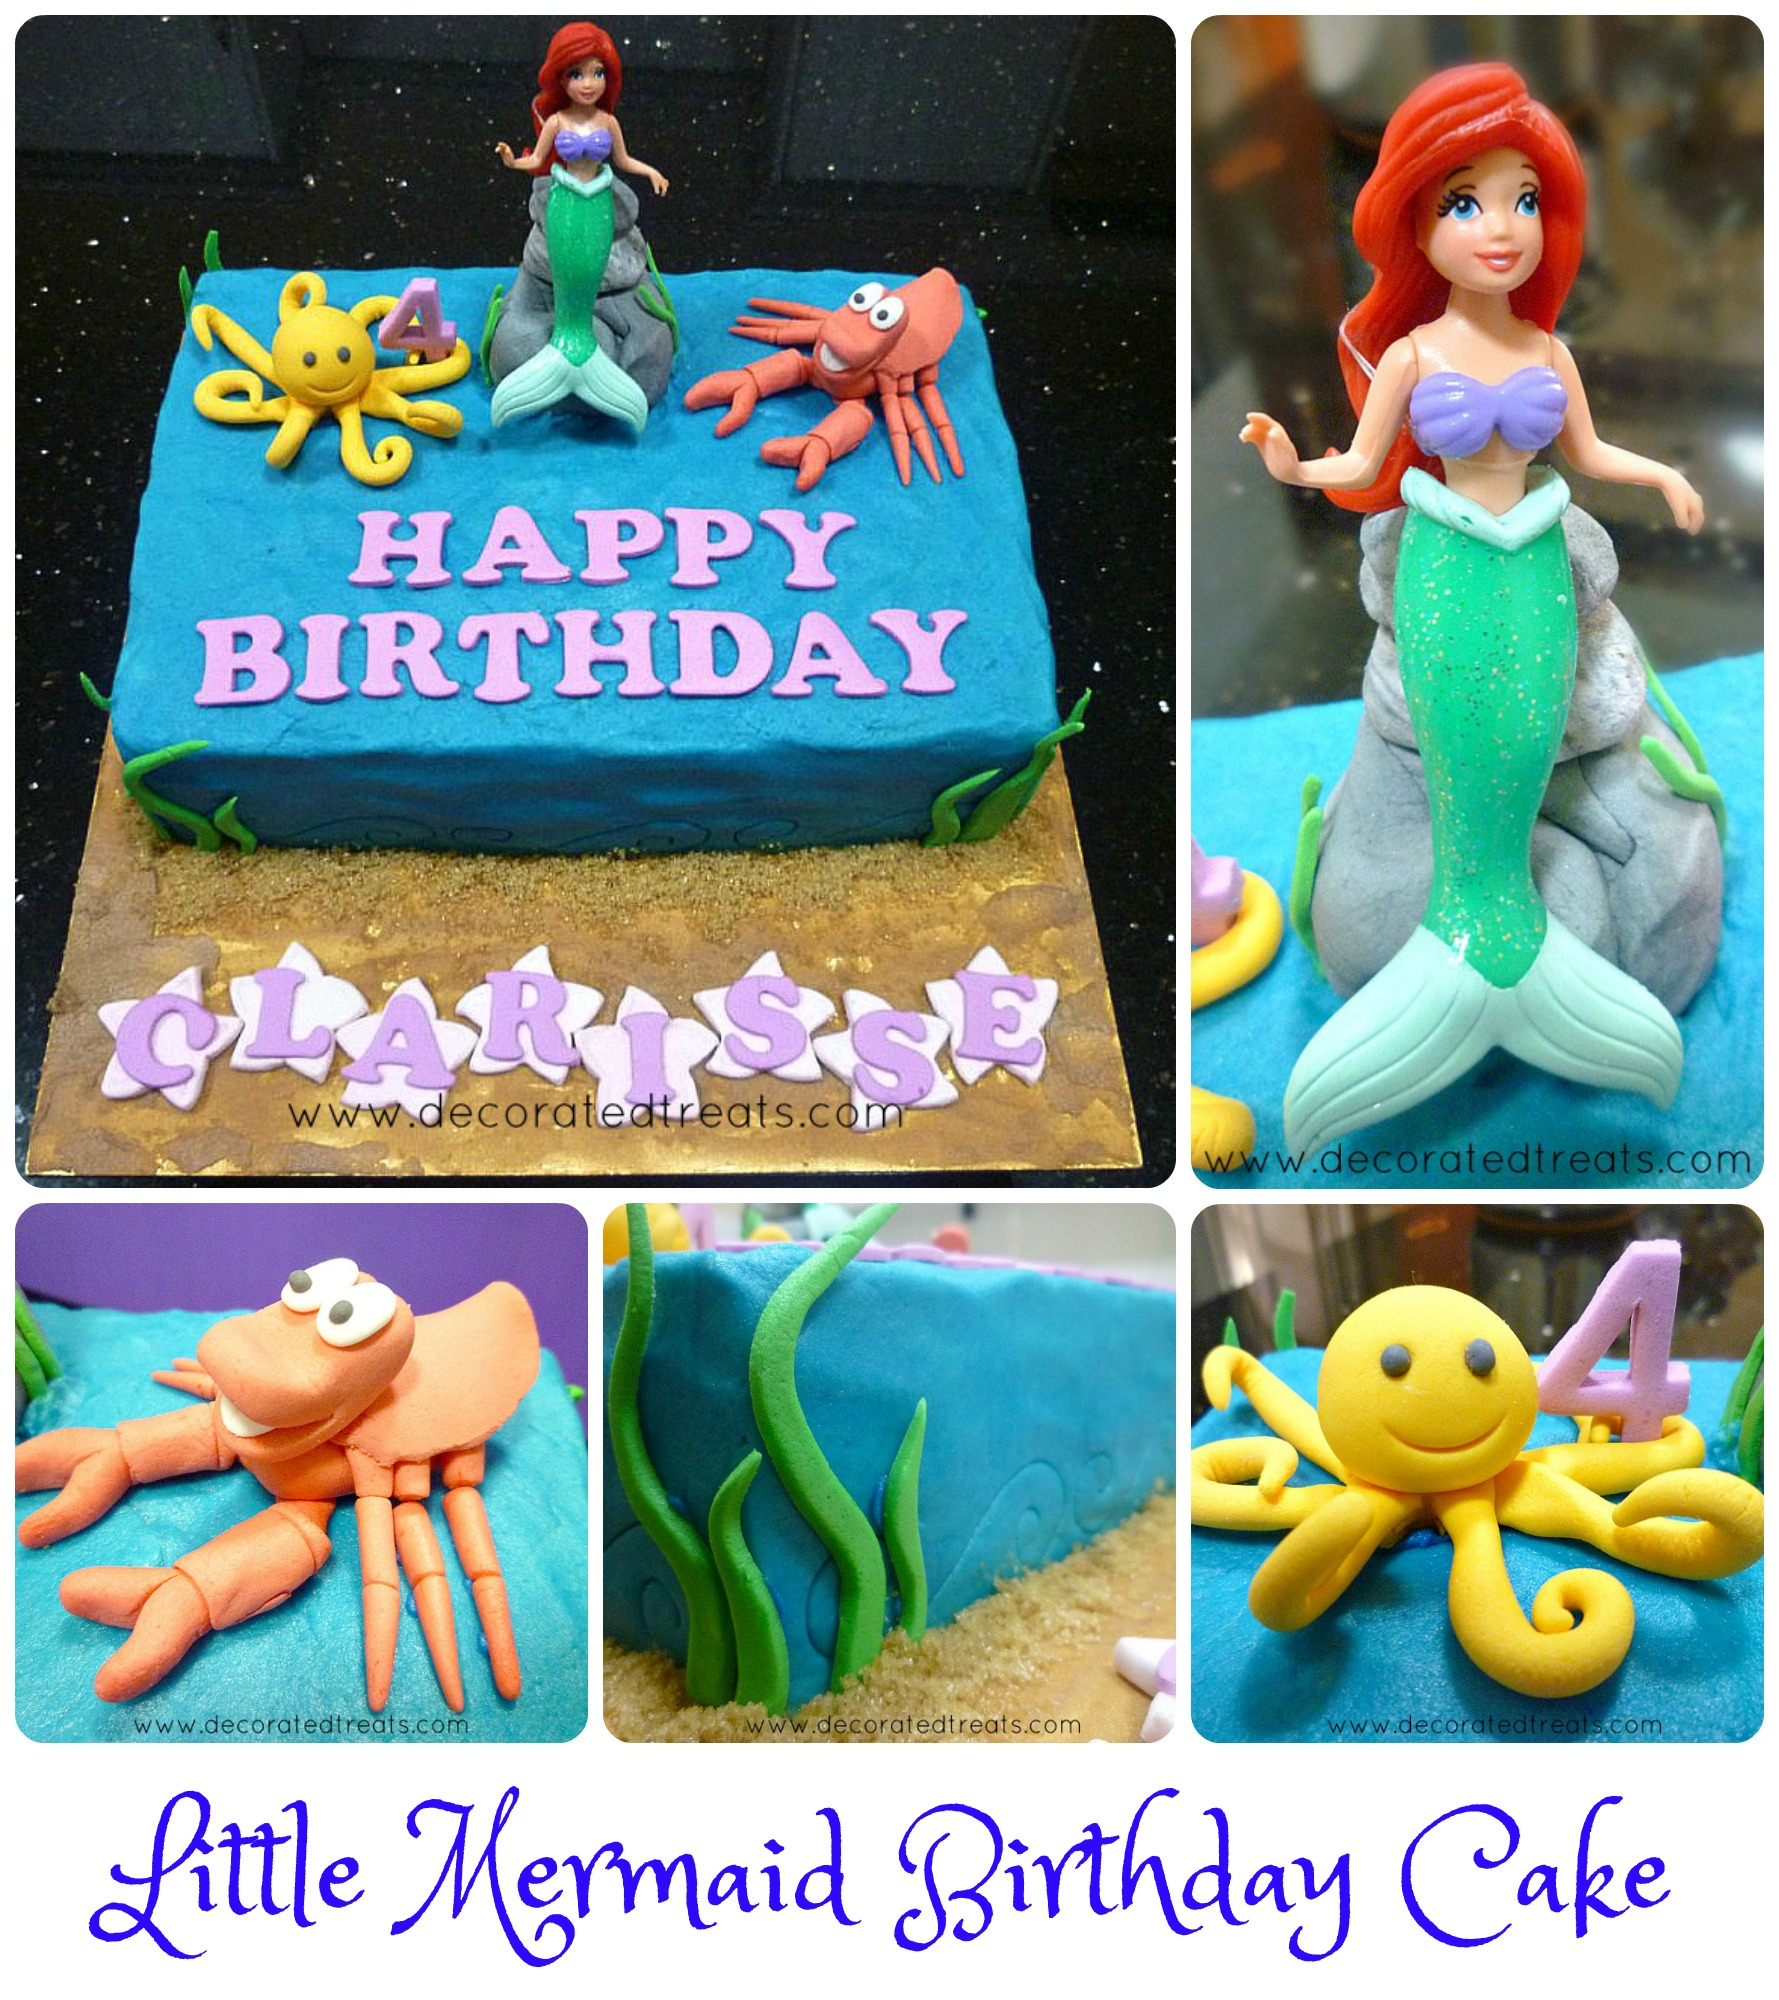 Mermaid Birthday Cake Ariel The Little Mermaid Birthday Cake Idea ...